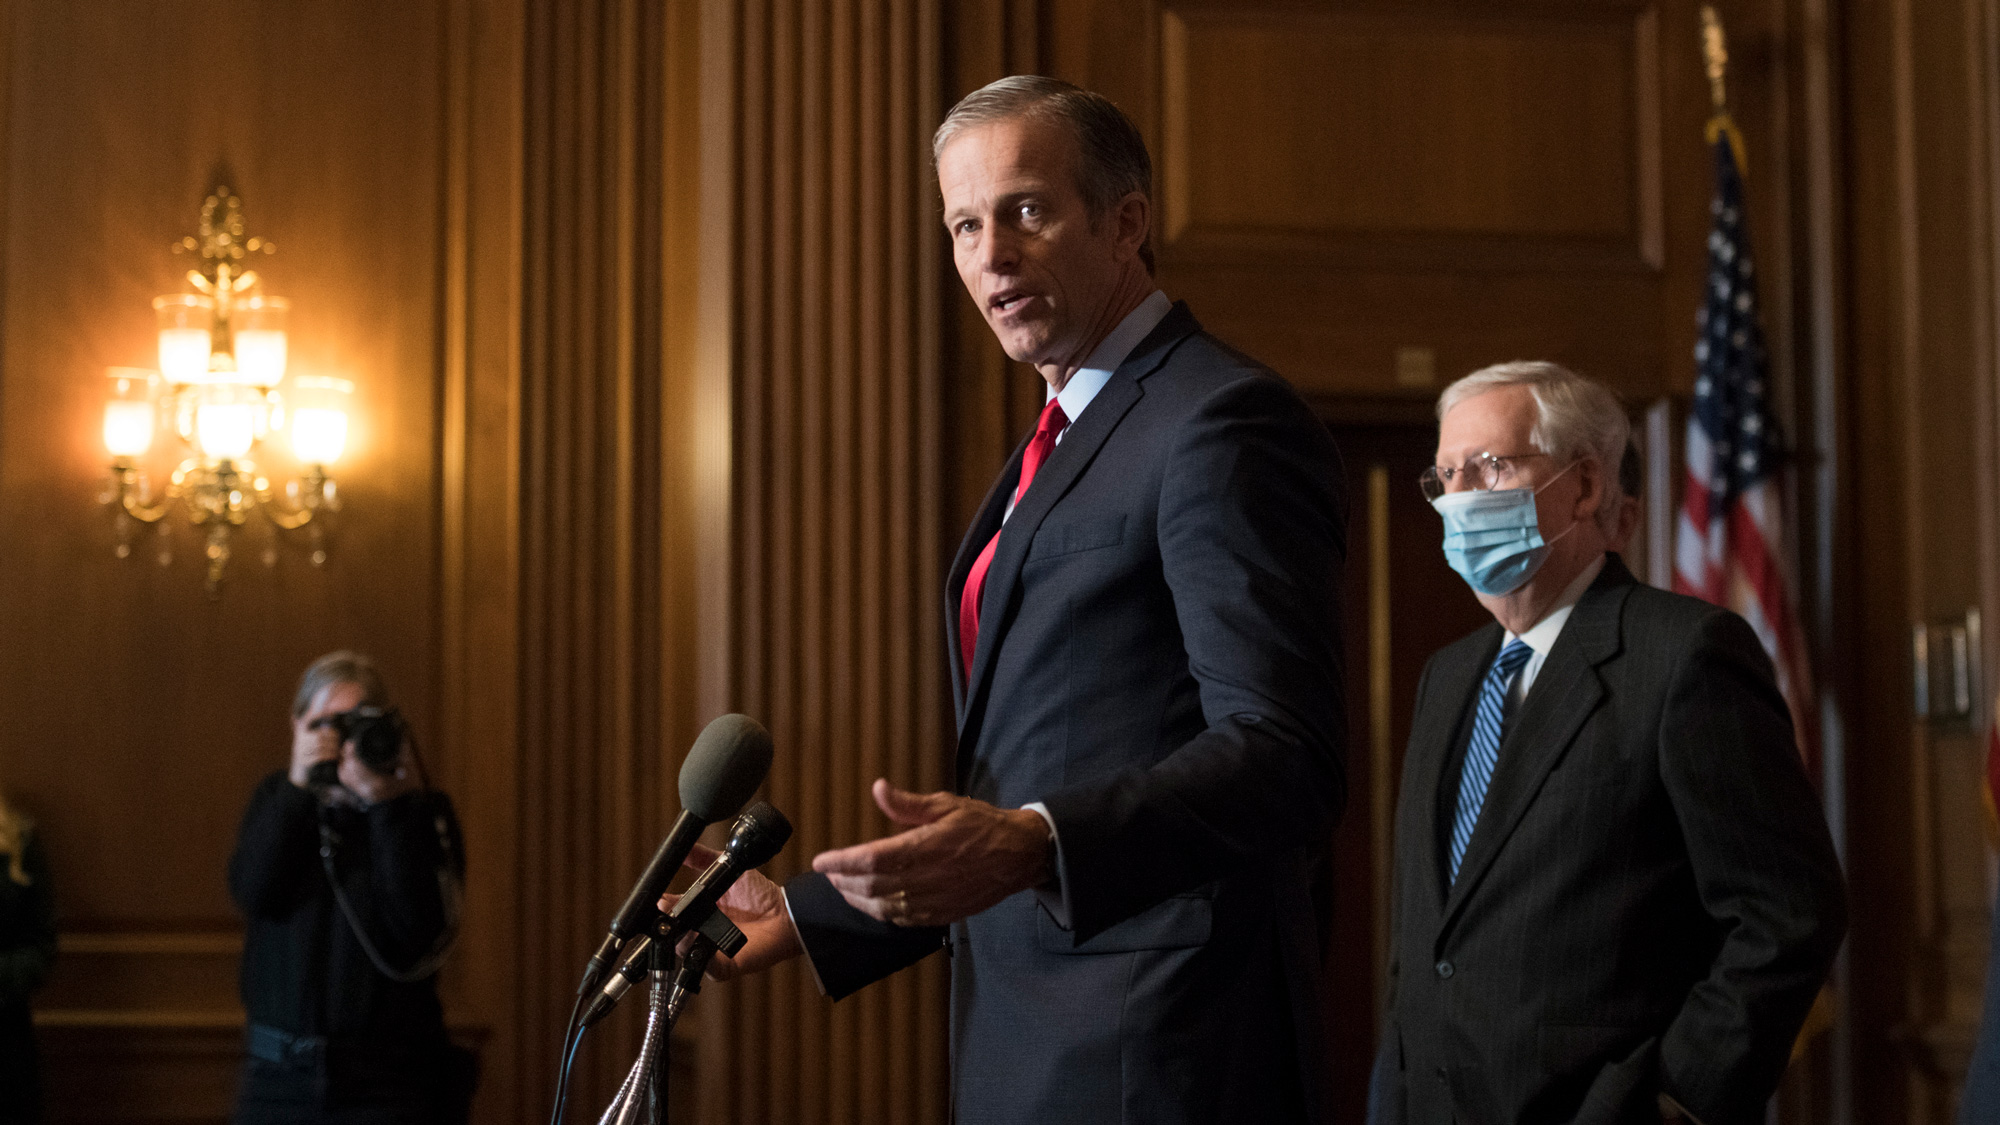 Sen. John Thune speaks during a news conference at the U.S. Capitol on December 15 in Washington, DC.